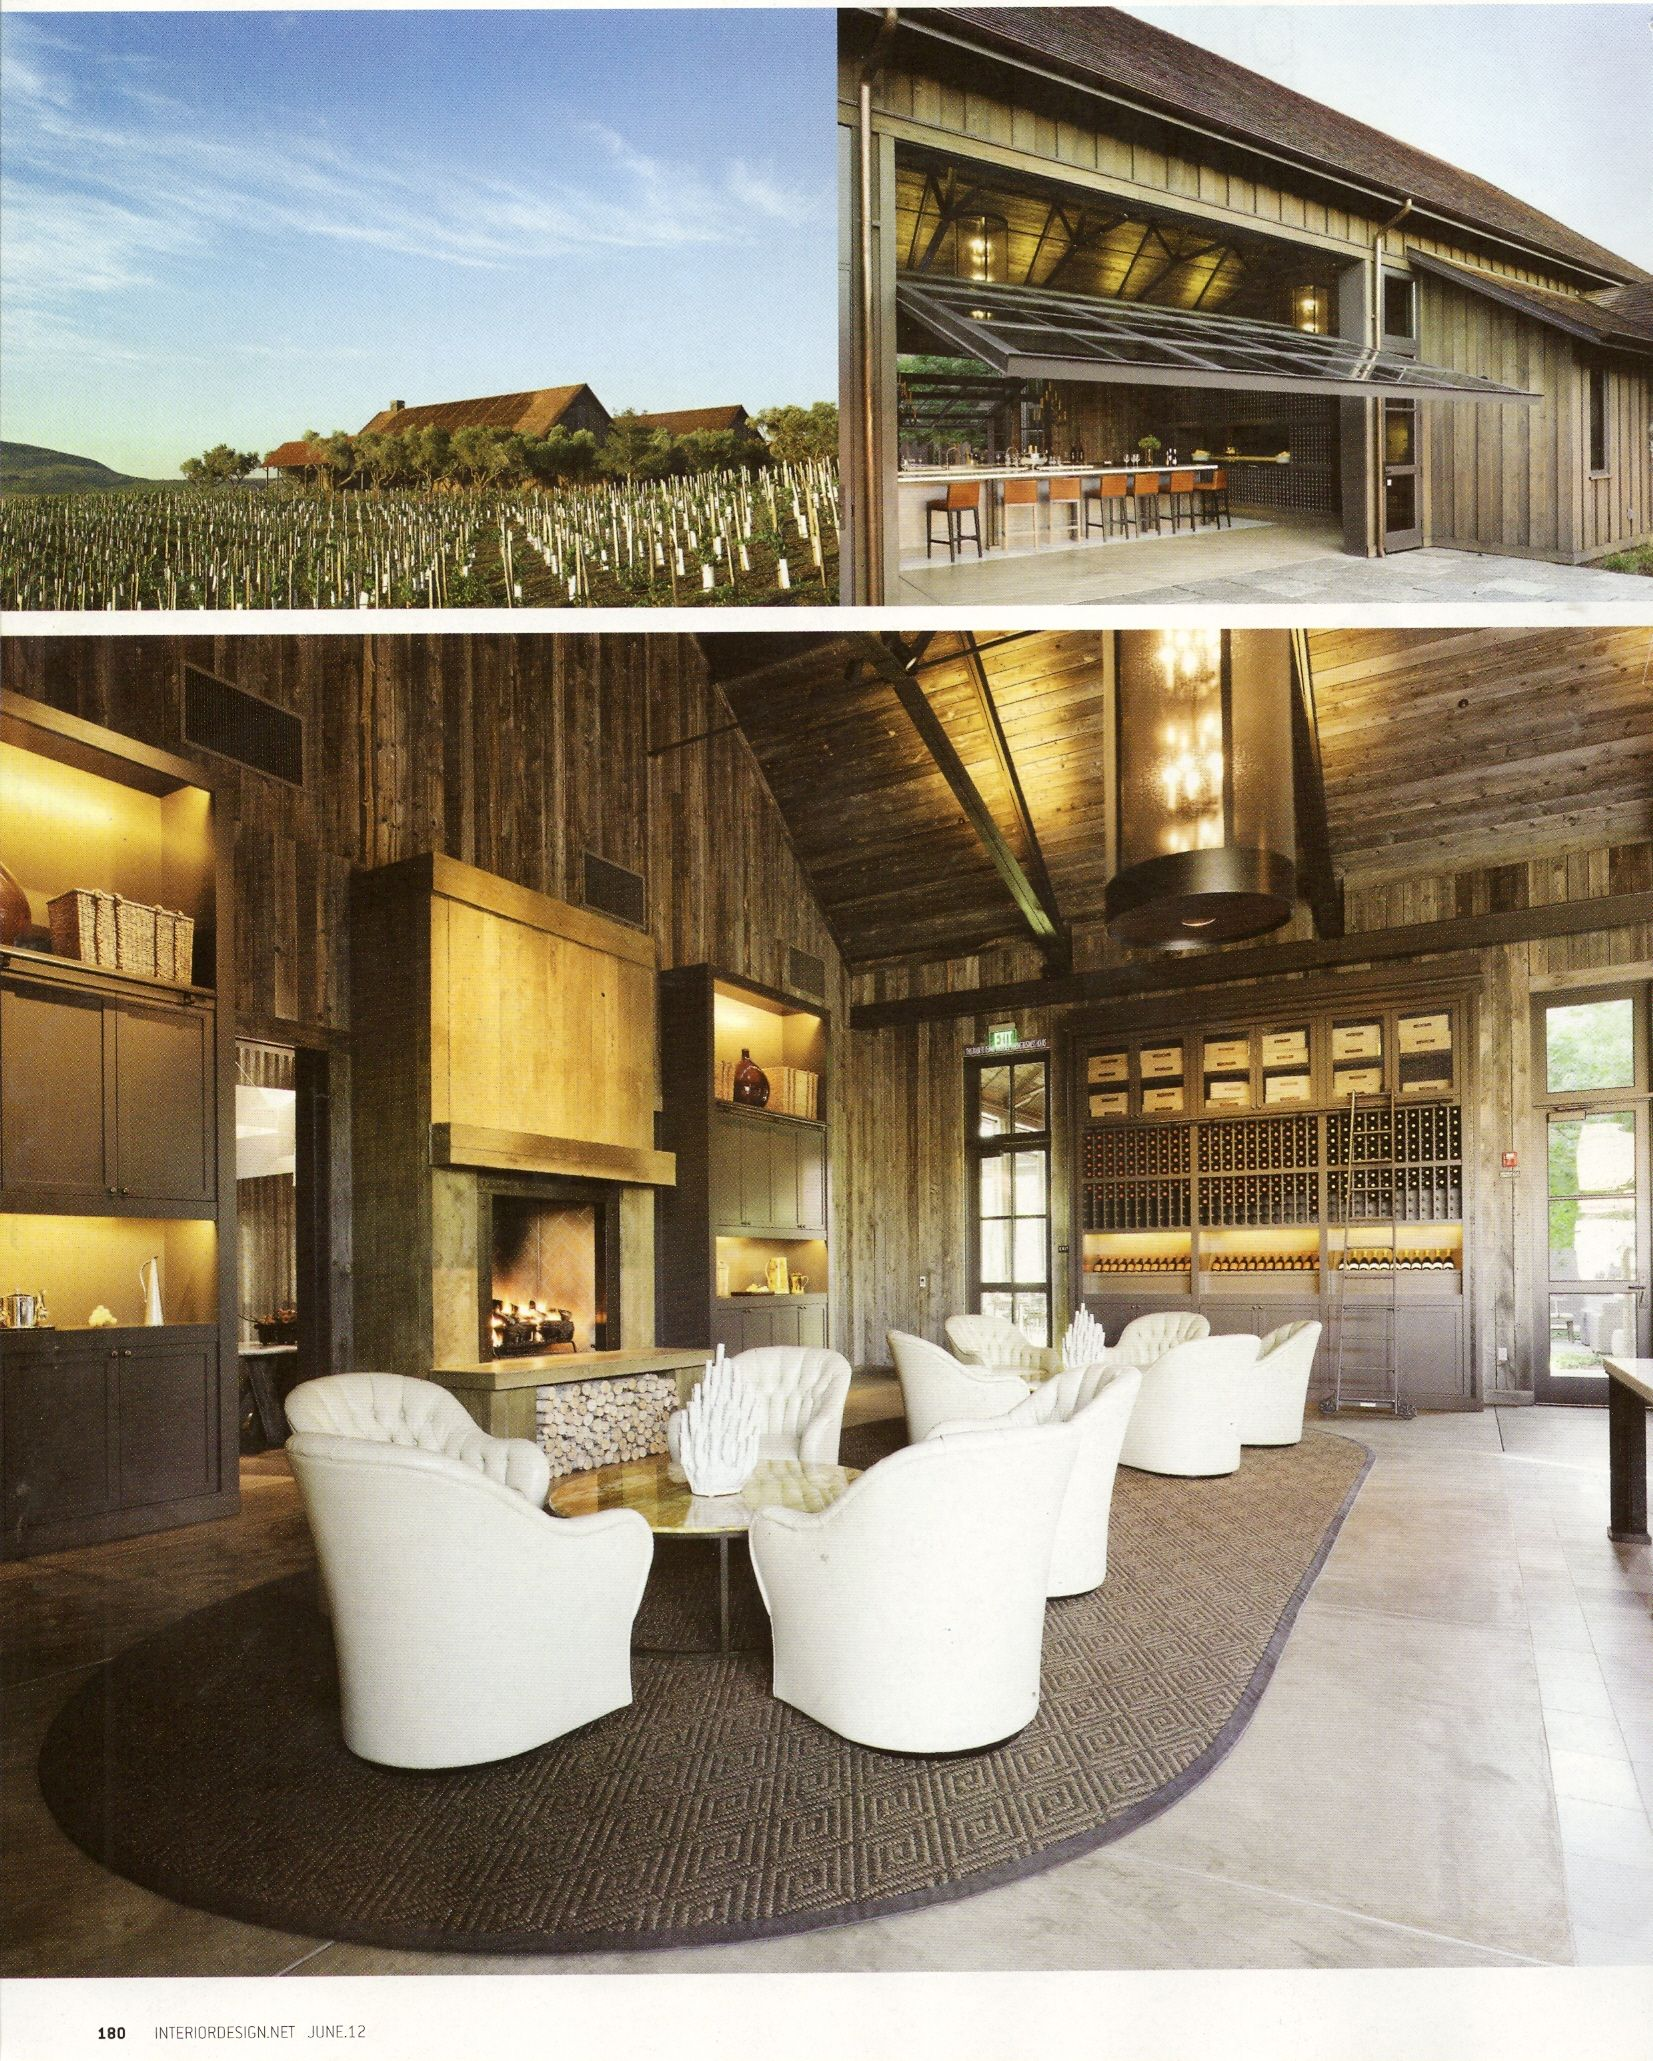 Ram's Gate Winery, how they feature the design worthy of its location and environment